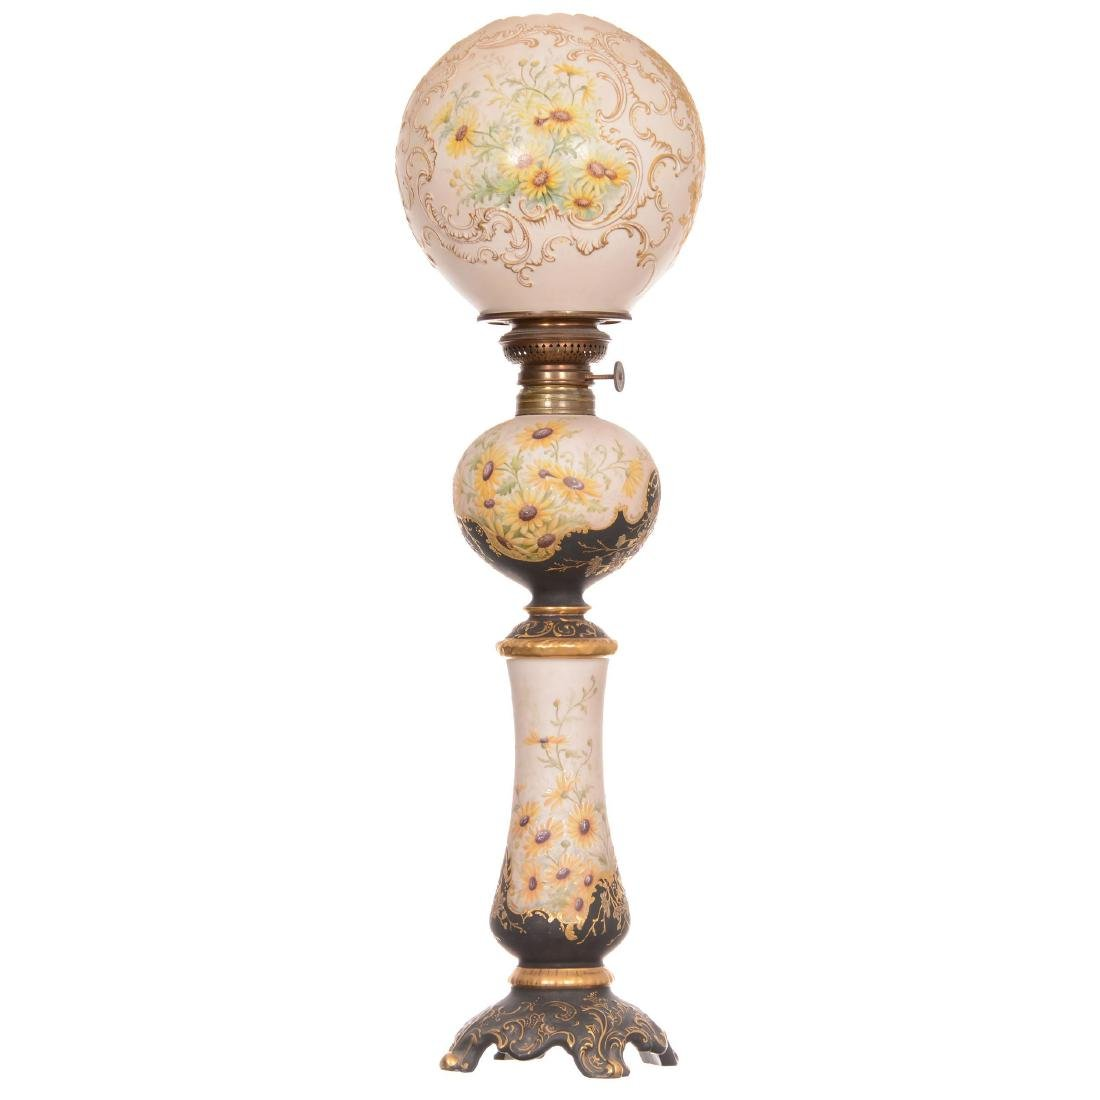 Extremely Rare Original Limoges Banquet Lamp